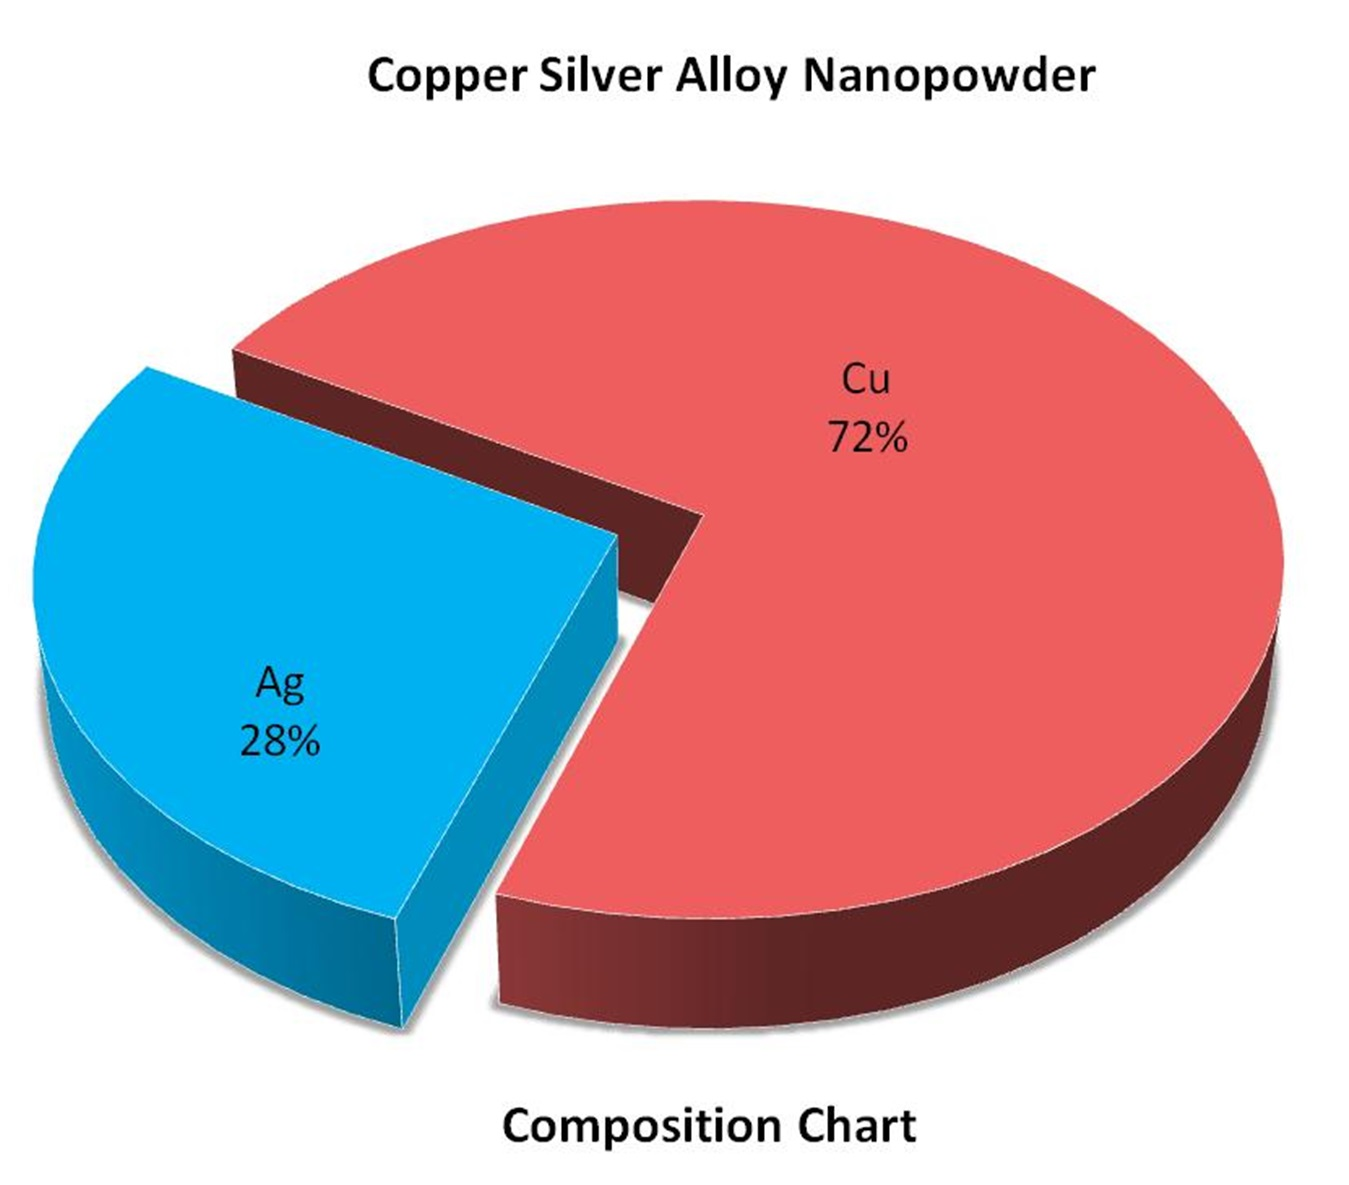 Composition Chart - Ag:Cu Alloy Nanopowder